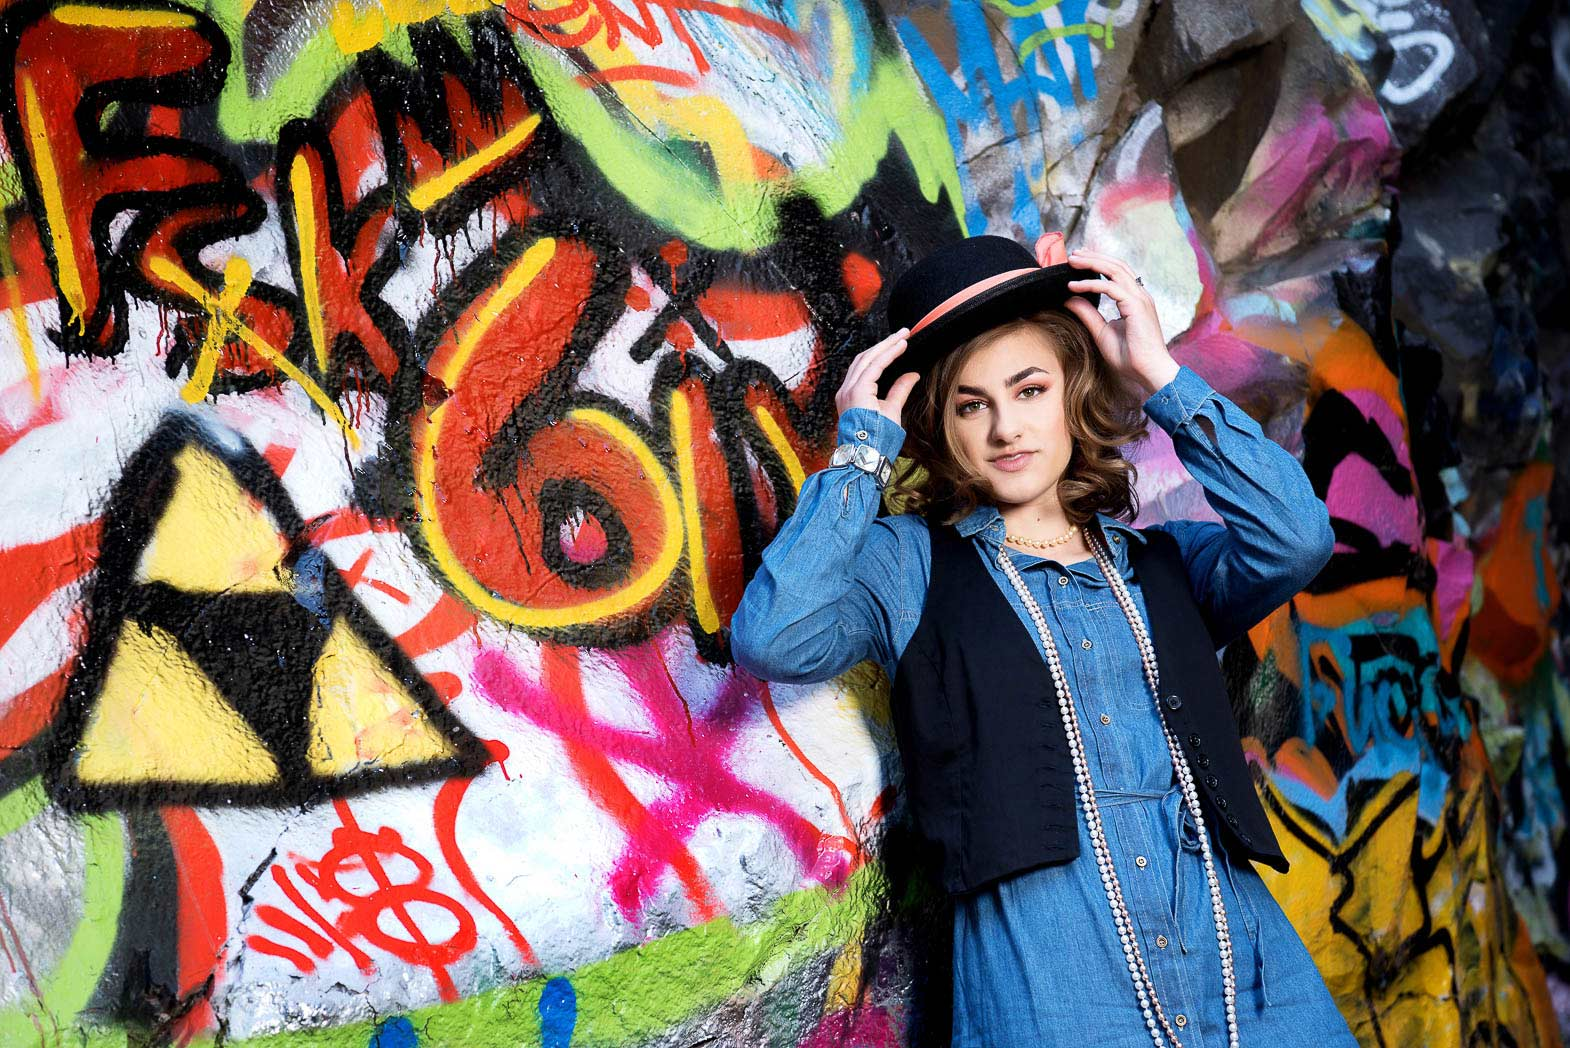 senior model shoot girl lifting hat by graffiti